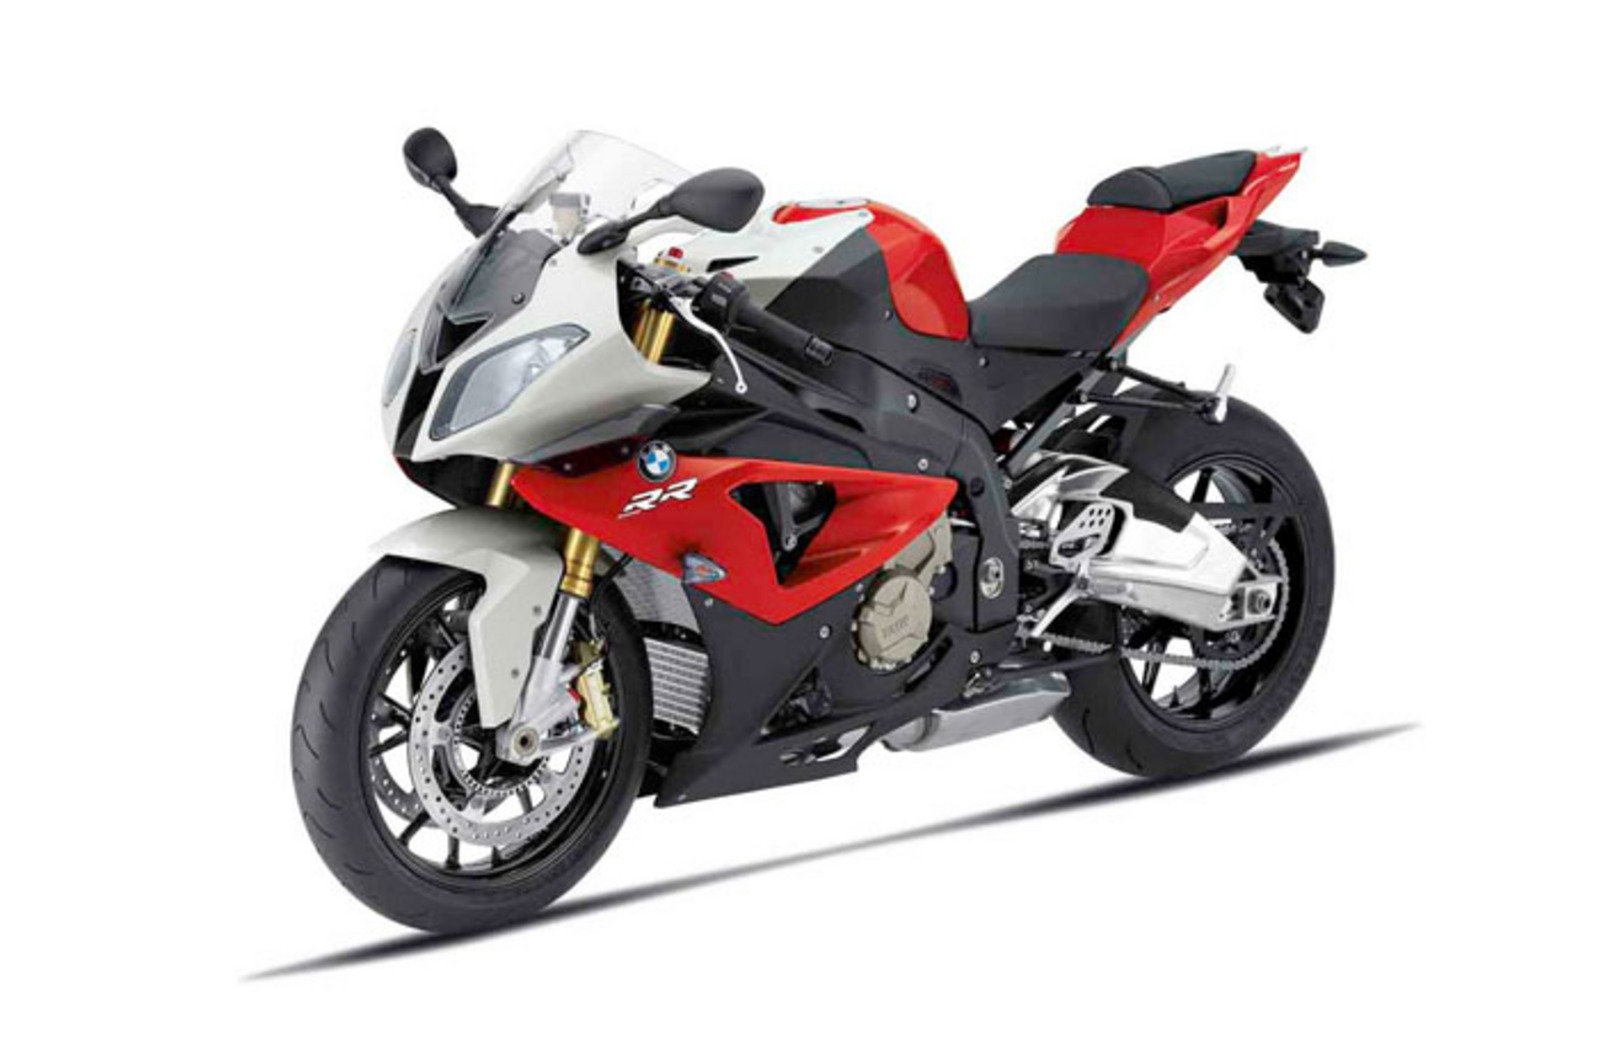 2013 bmw s 1000 rr sport review top speed. Black Bedroom Furniture Sets. Home Design Ideas